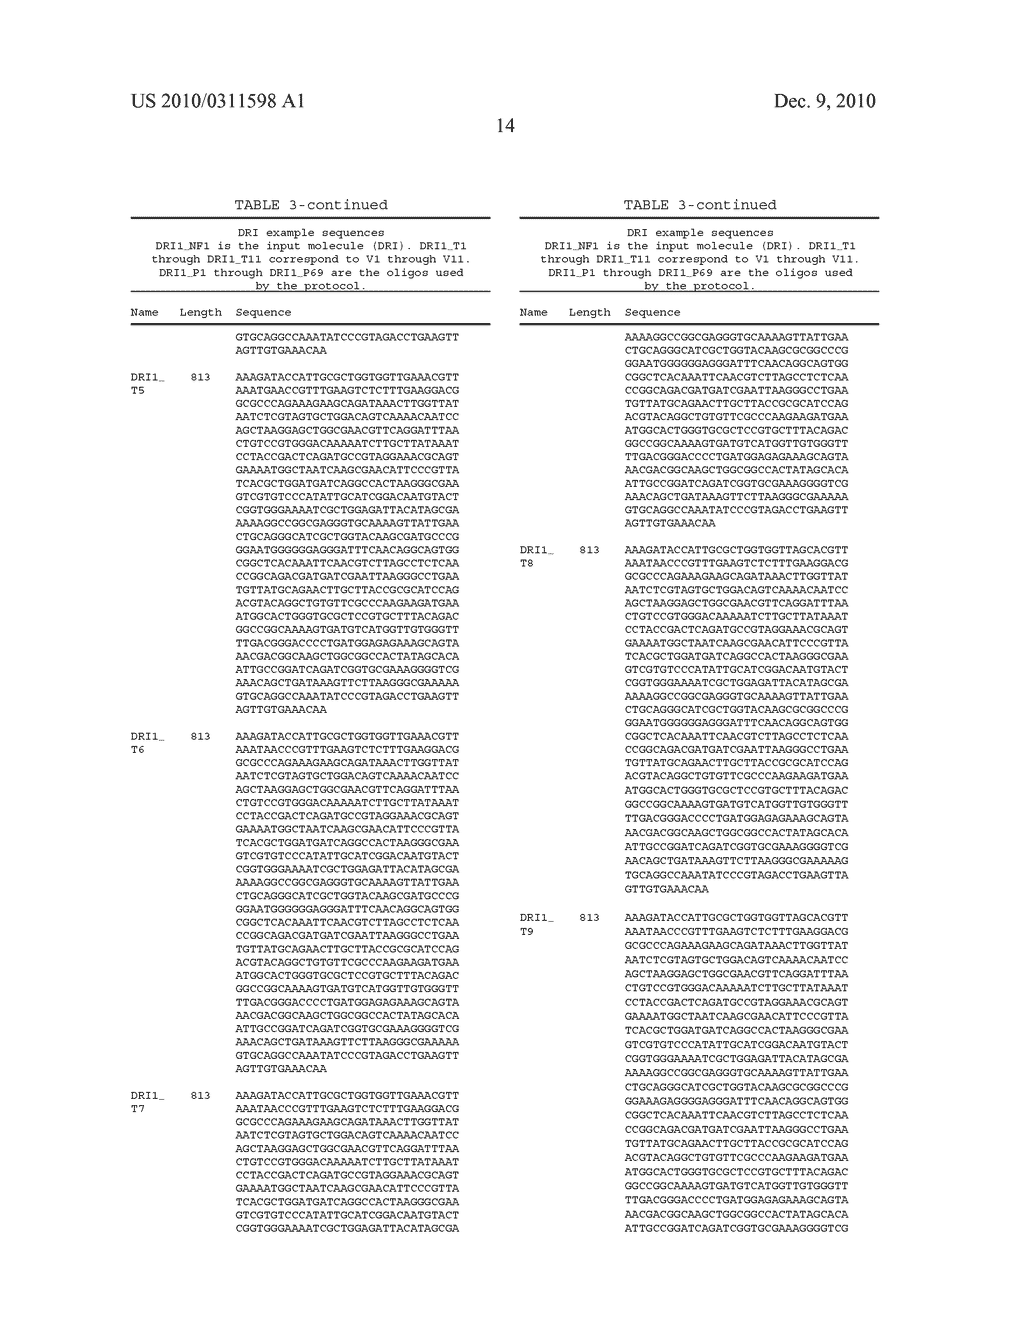 SYSTEM AND METHOD FOR EDITING AND MANIPULATING DNA - diagram, schematic, and image 32